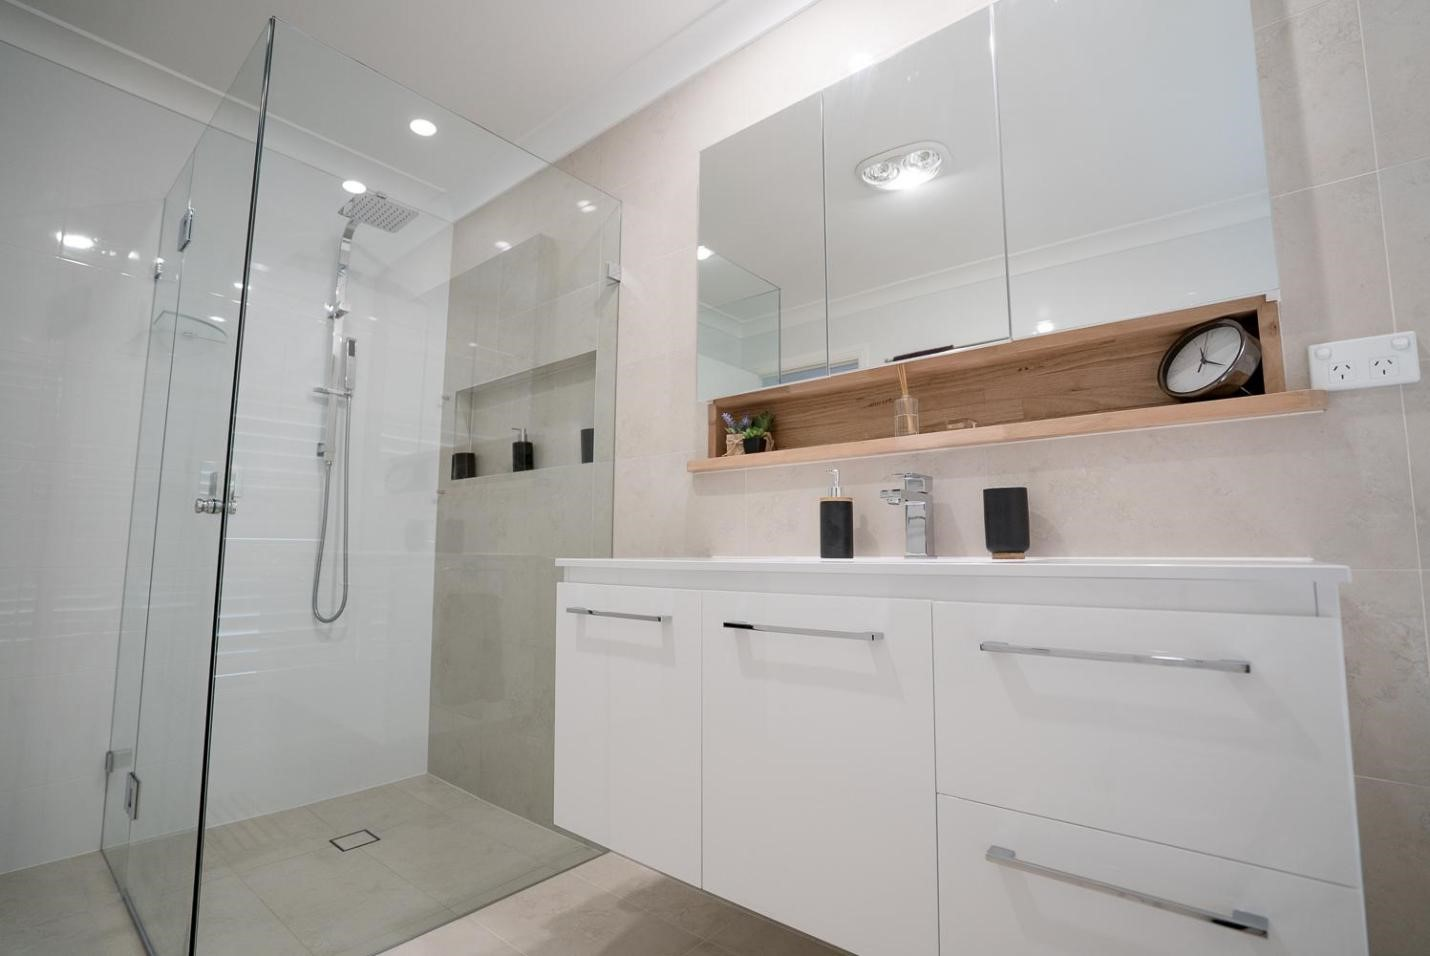 BATHROOM RENOVATIONS IN CHATSWOOD